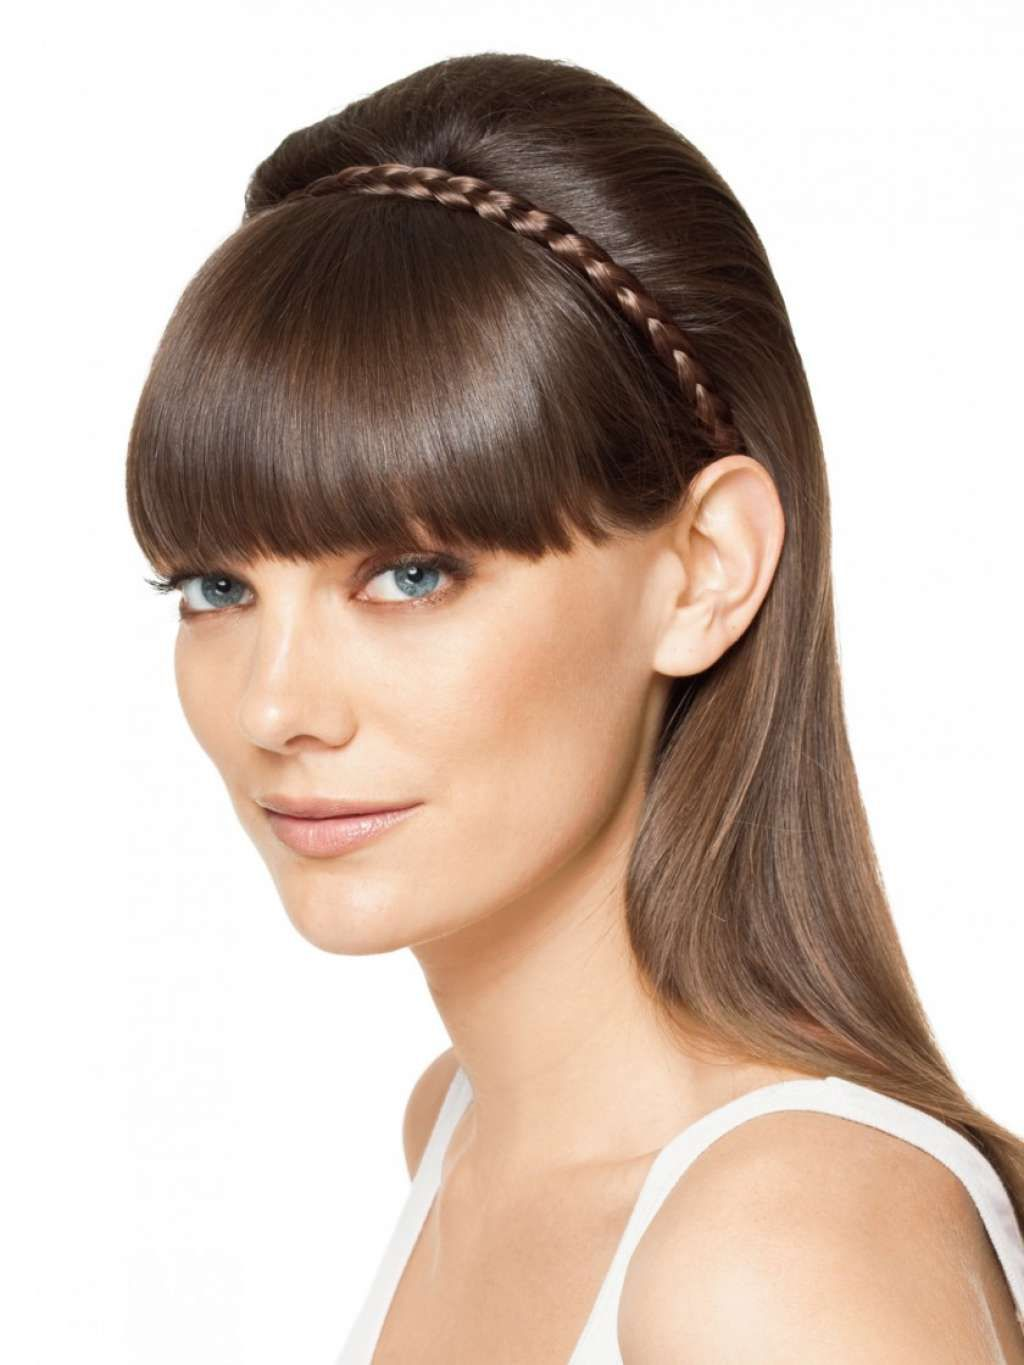 Neat sleek hairstyle with braided headband :: one1lady.com :: #hair #hairs #hairstyle #hairstyles